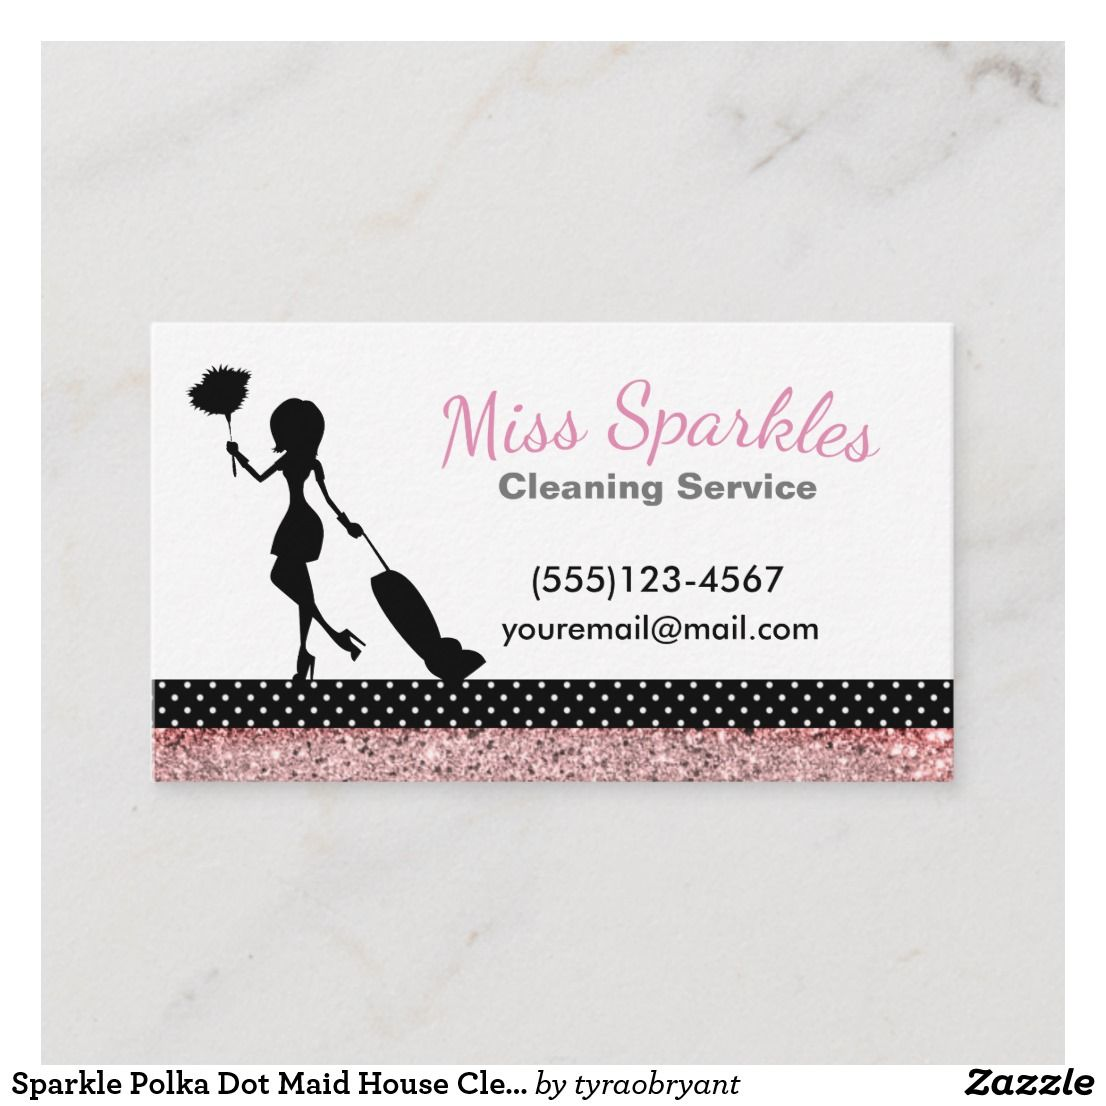 Sparkle Polka Dot Maid House Cleaning Services Business Card Zazzle Com Cleaning Business Cards Cleaning Service House Cleaning Services